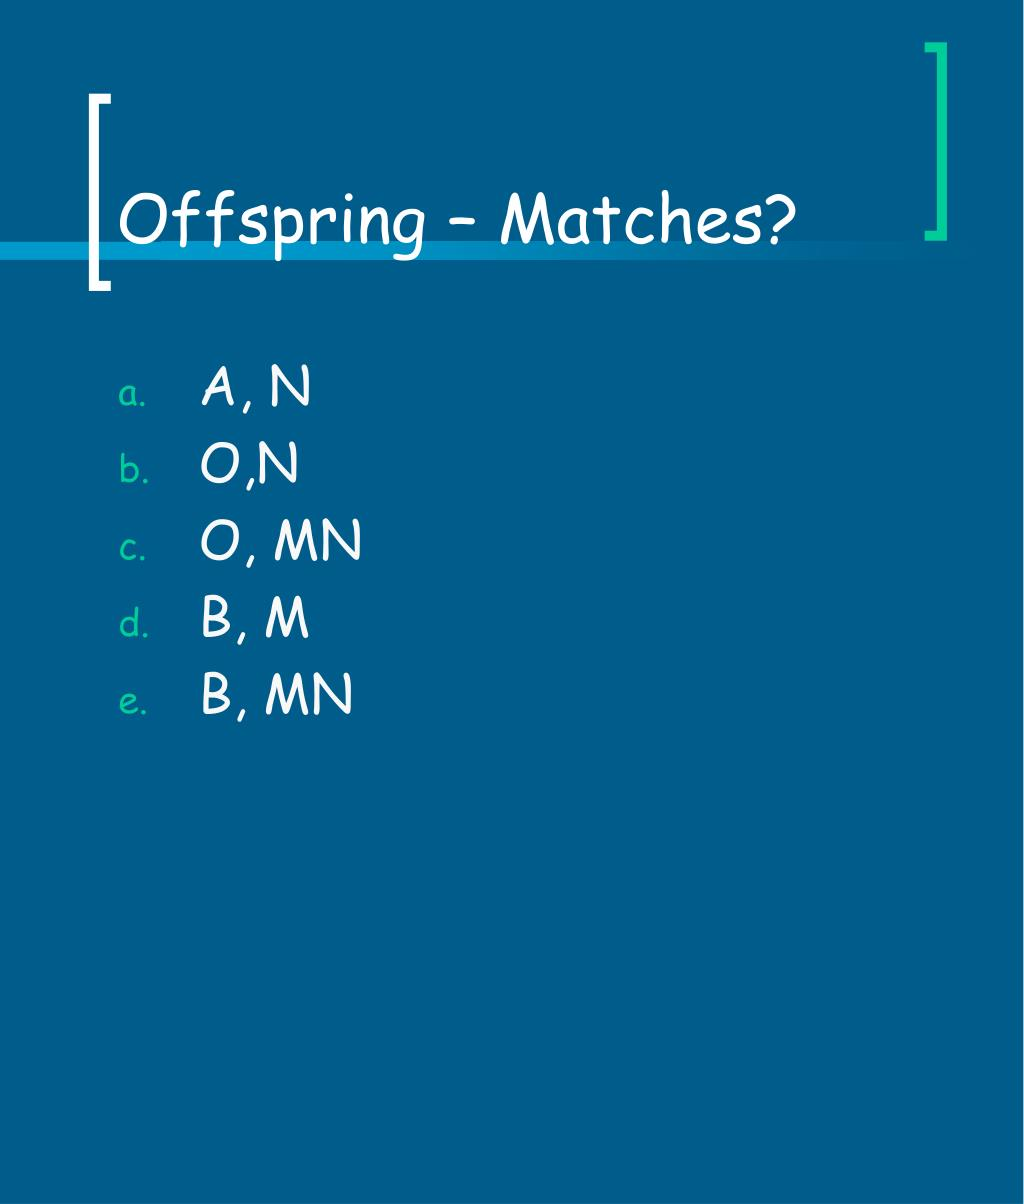 Offspring – Matches?